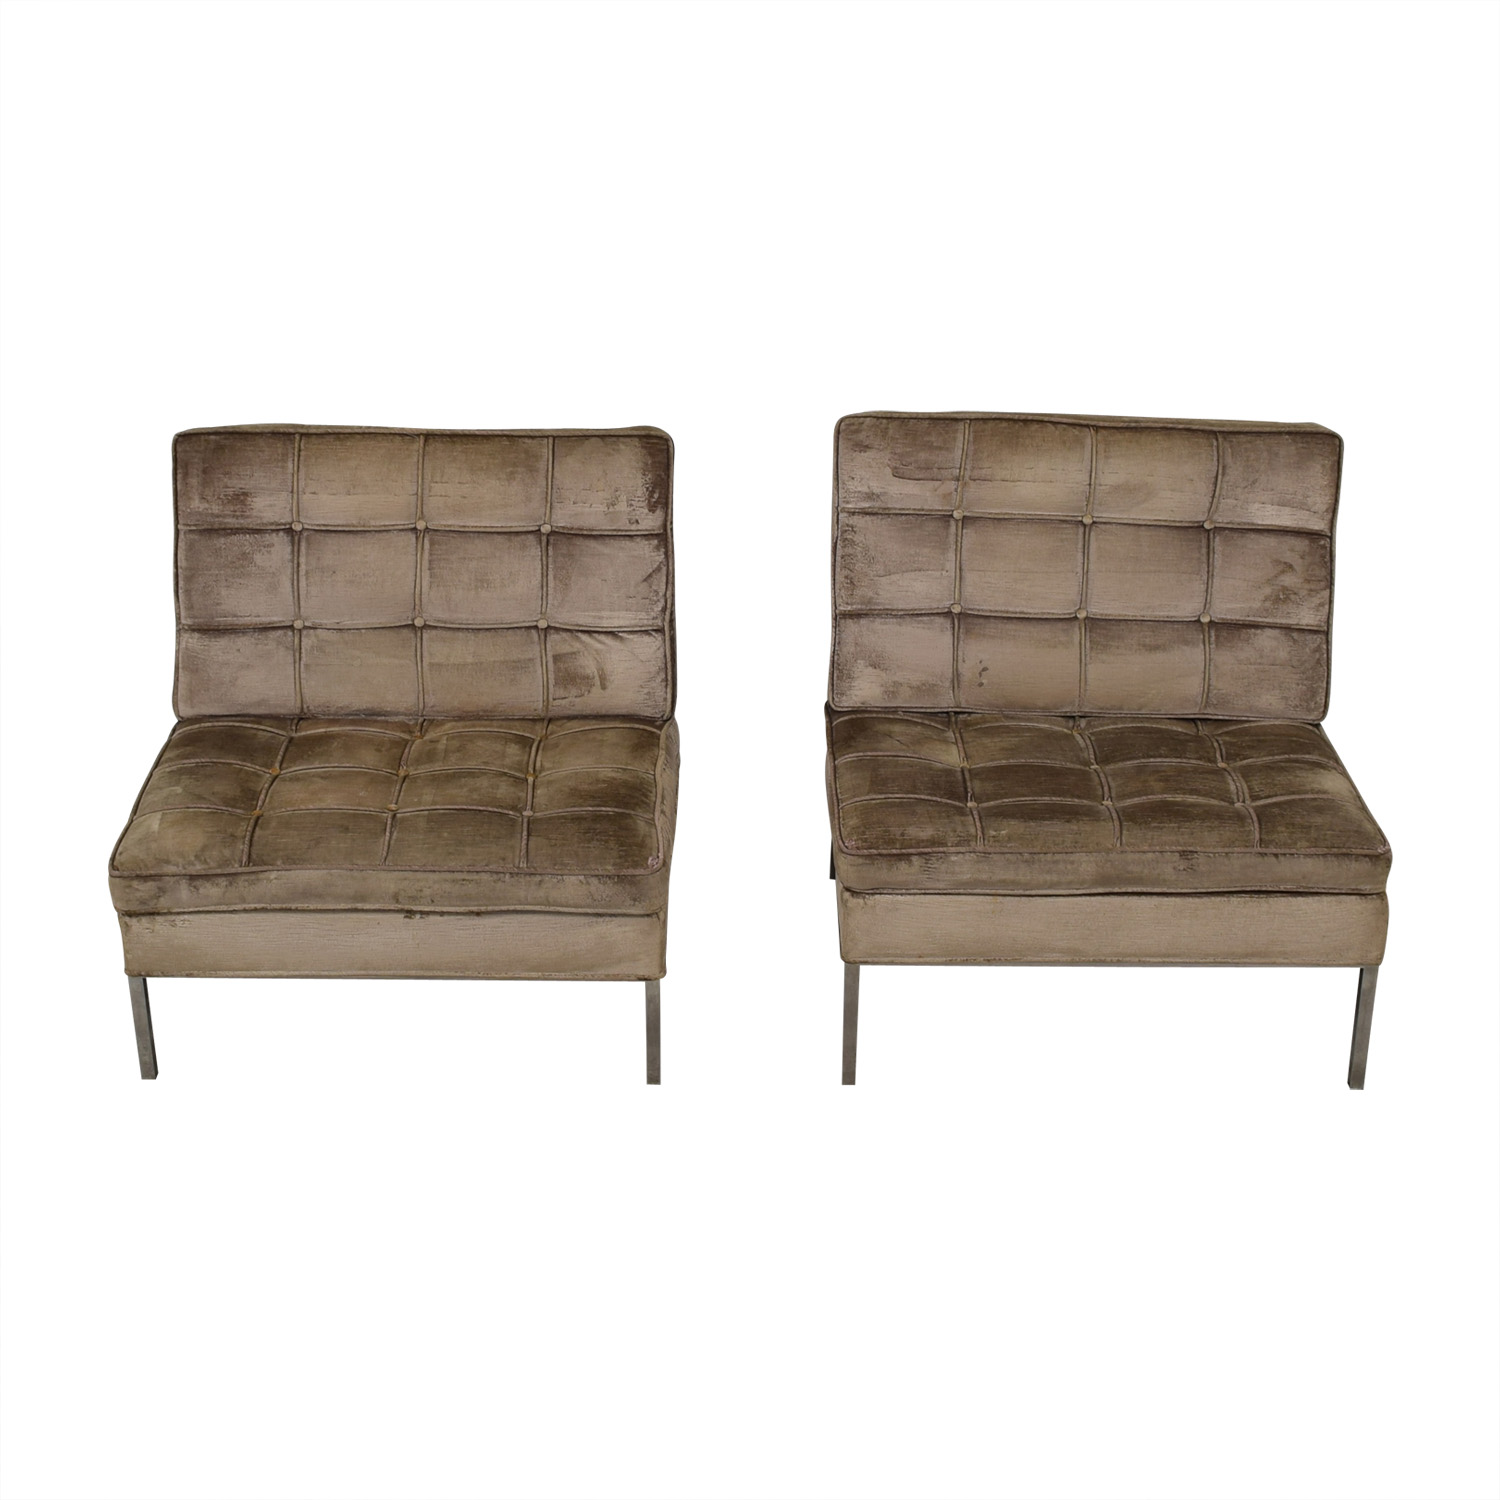 Knoll Knoll Beige Tufted Velvet Accent Chairs for sale